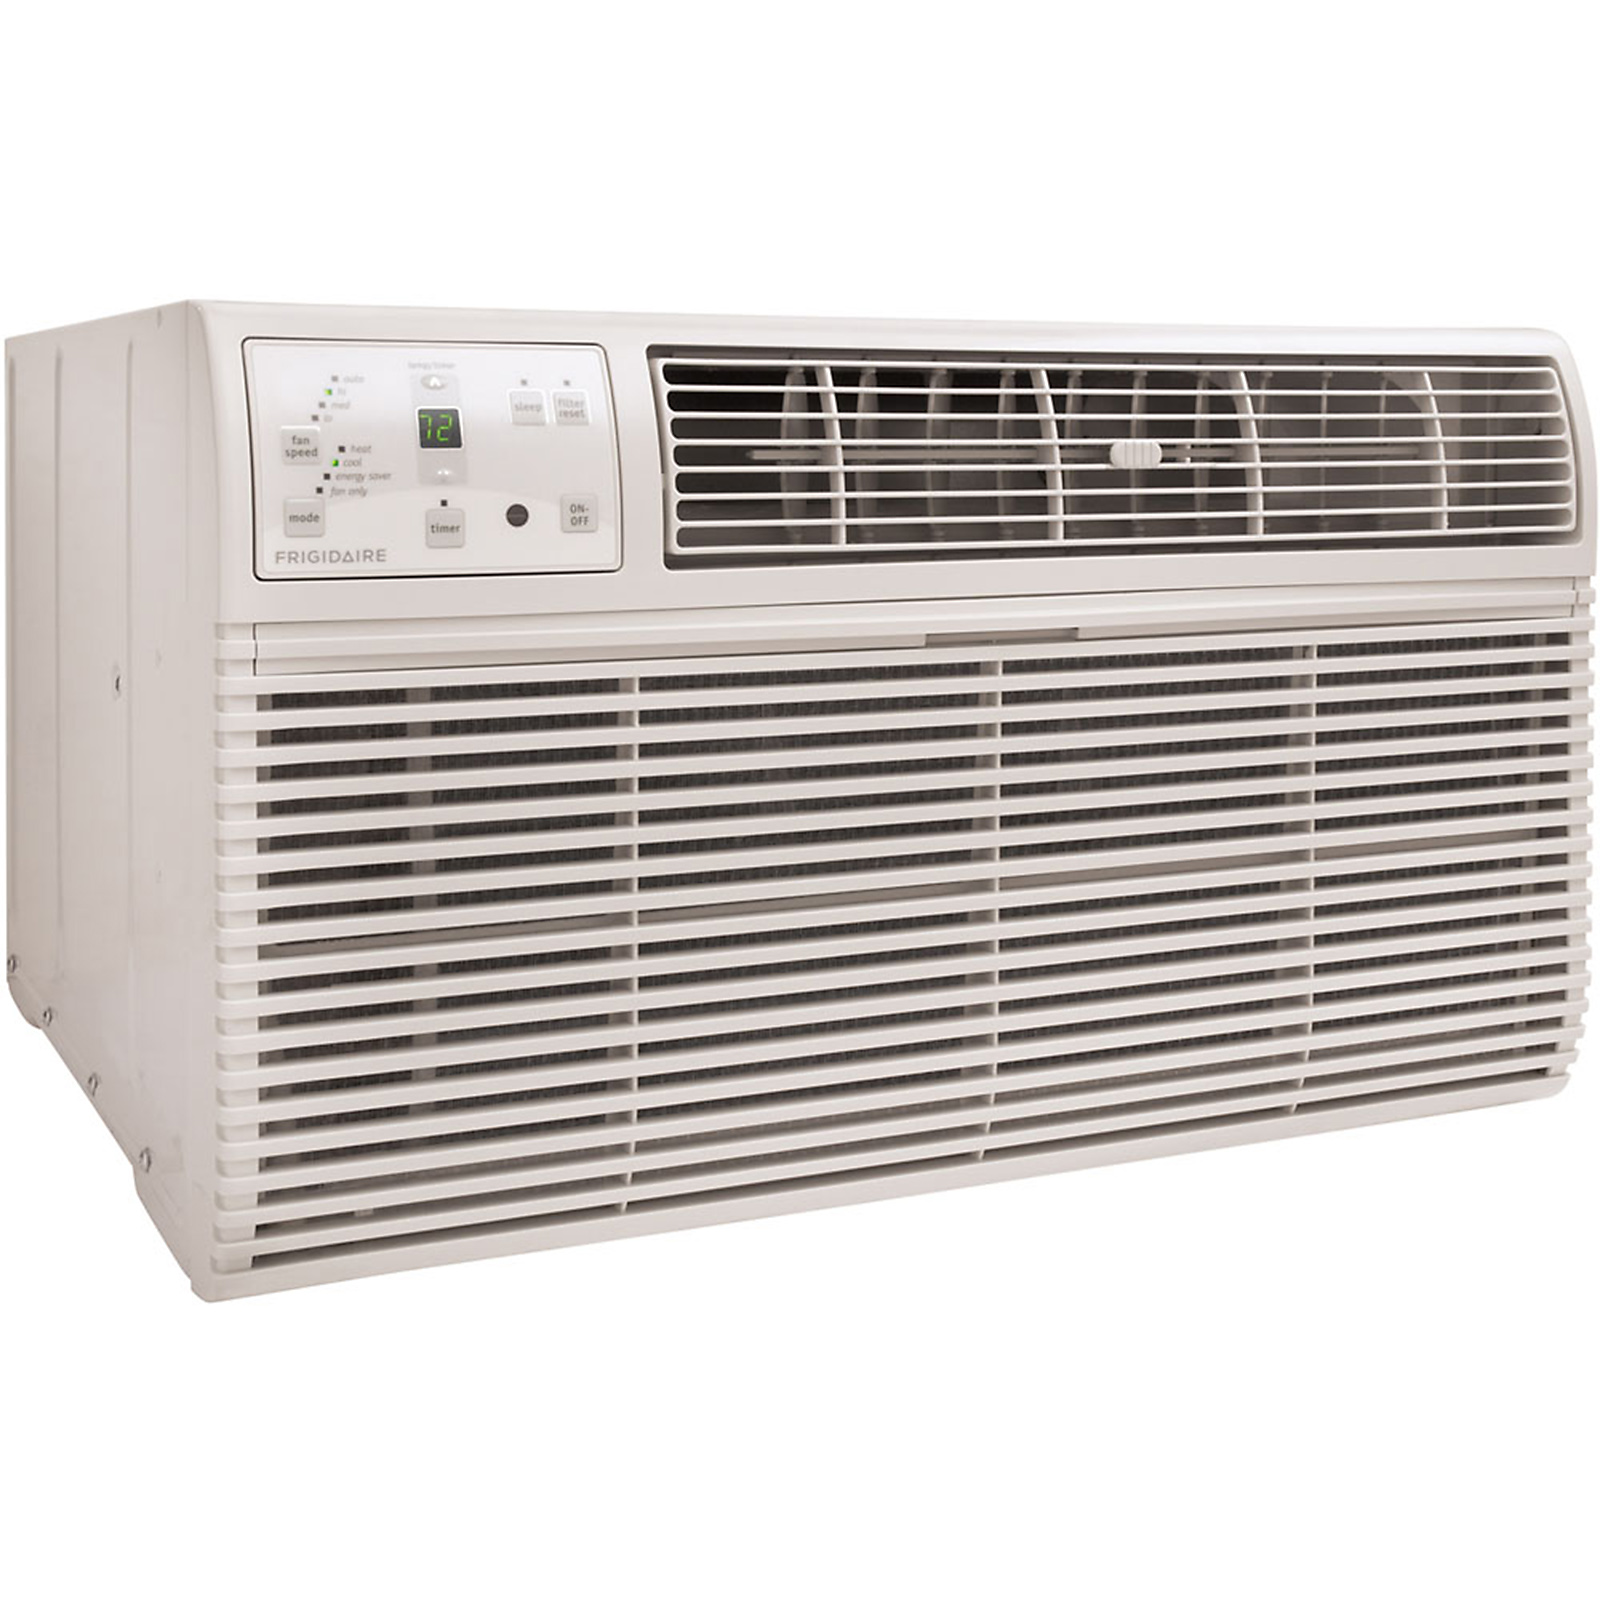 Frigidaire 10,000 BTU 230-Volt Through-the-Wall Air Conditioner with 10,600 BTU Supplemental Heat